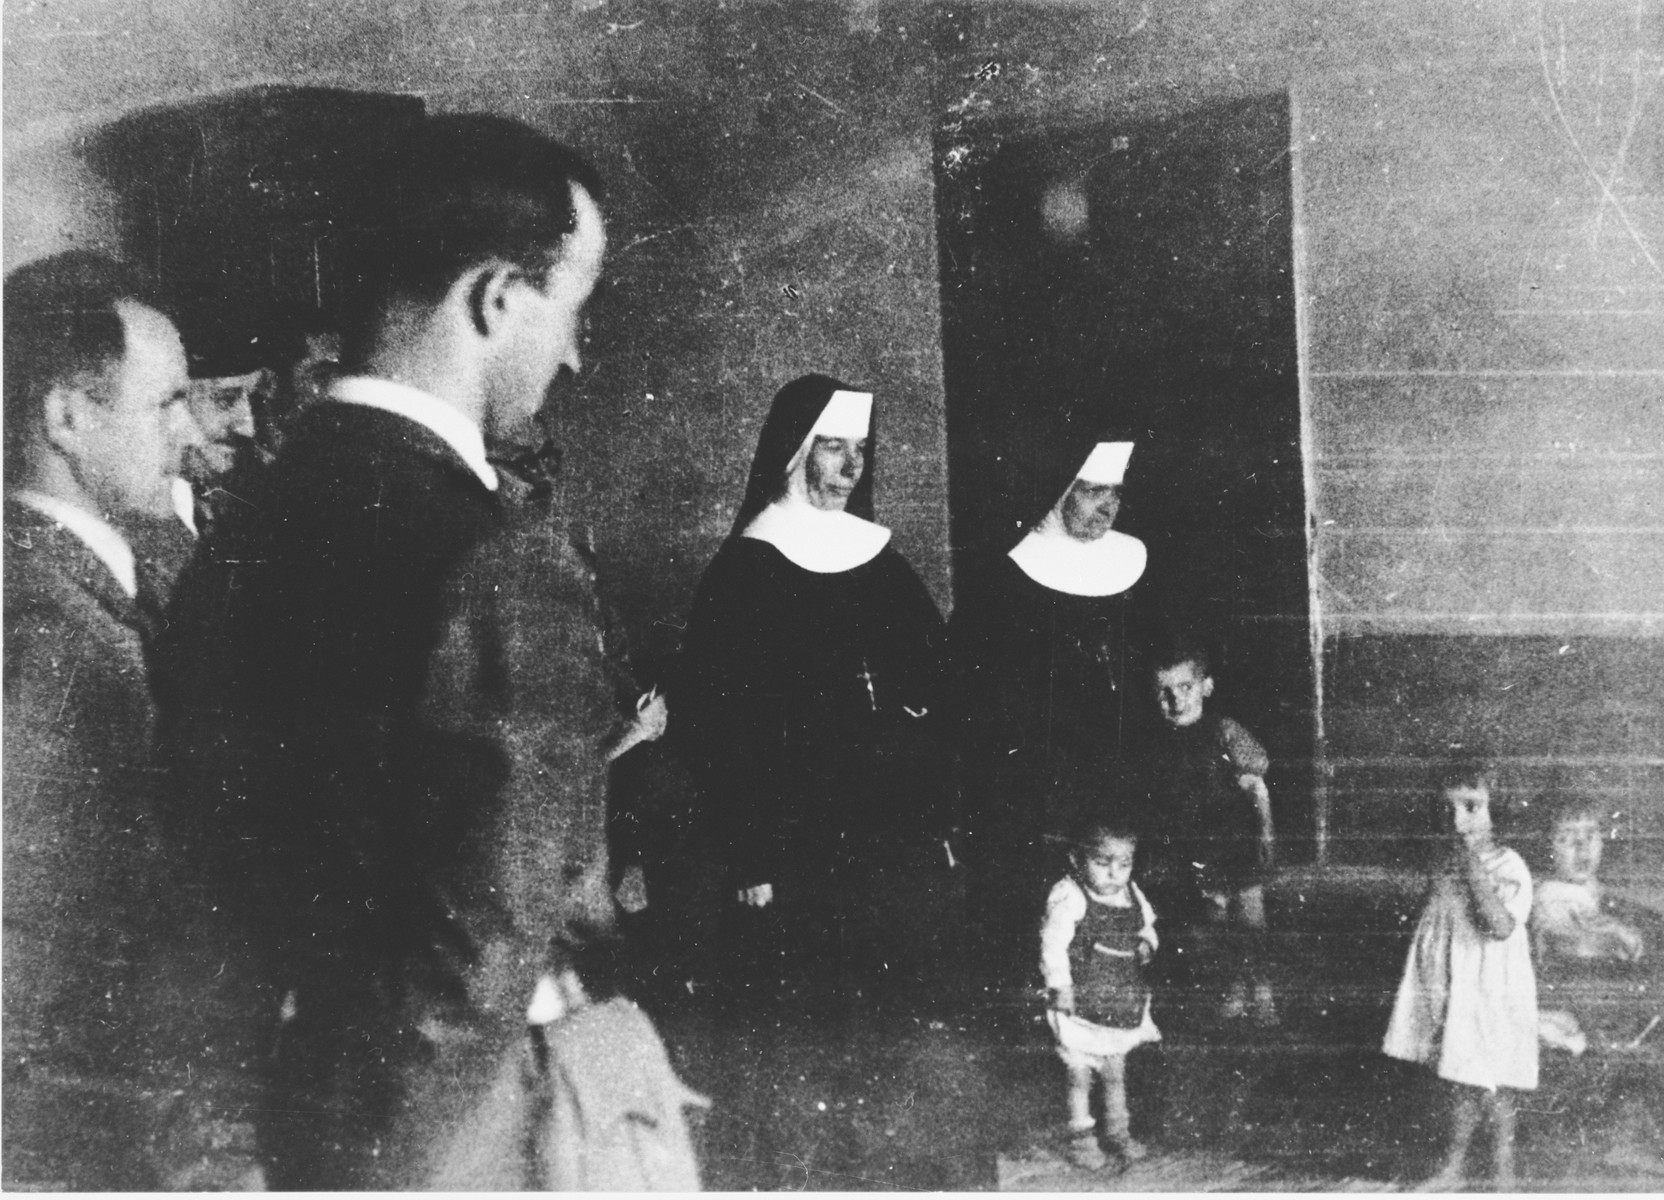 Croatian officials and Ustasa militia view a group of children in the care of nuns at the Jastrebarsko concentration camp.